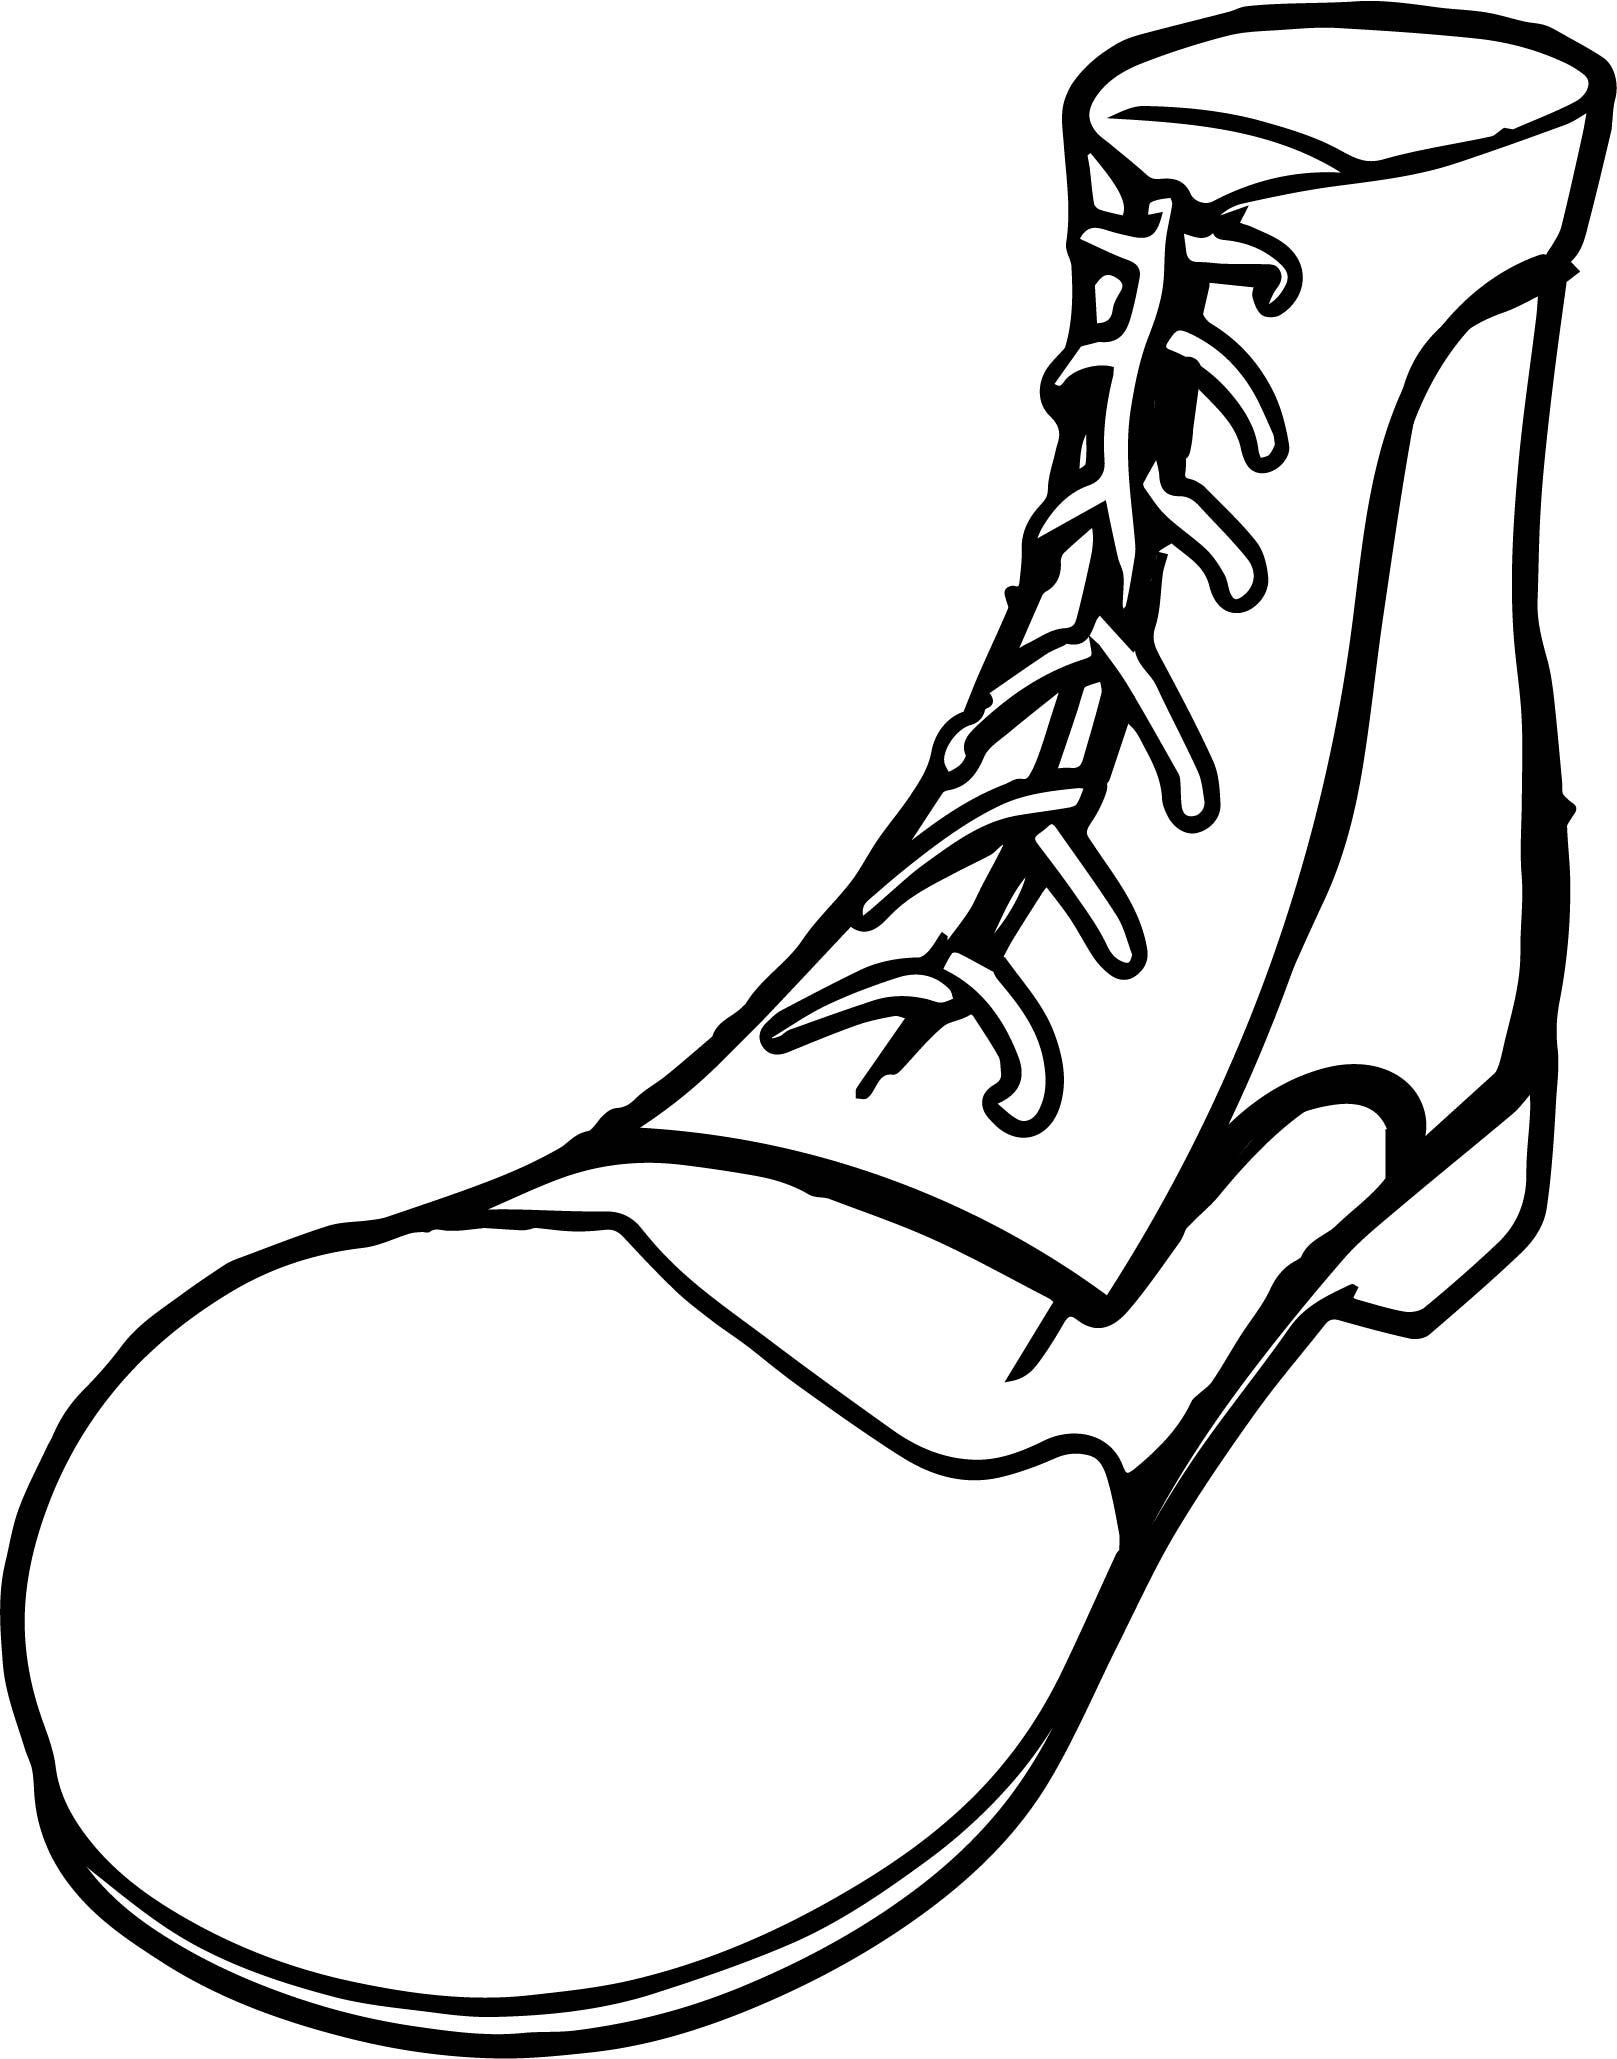 Pete the Cat Shoes Coloring Page in 2020